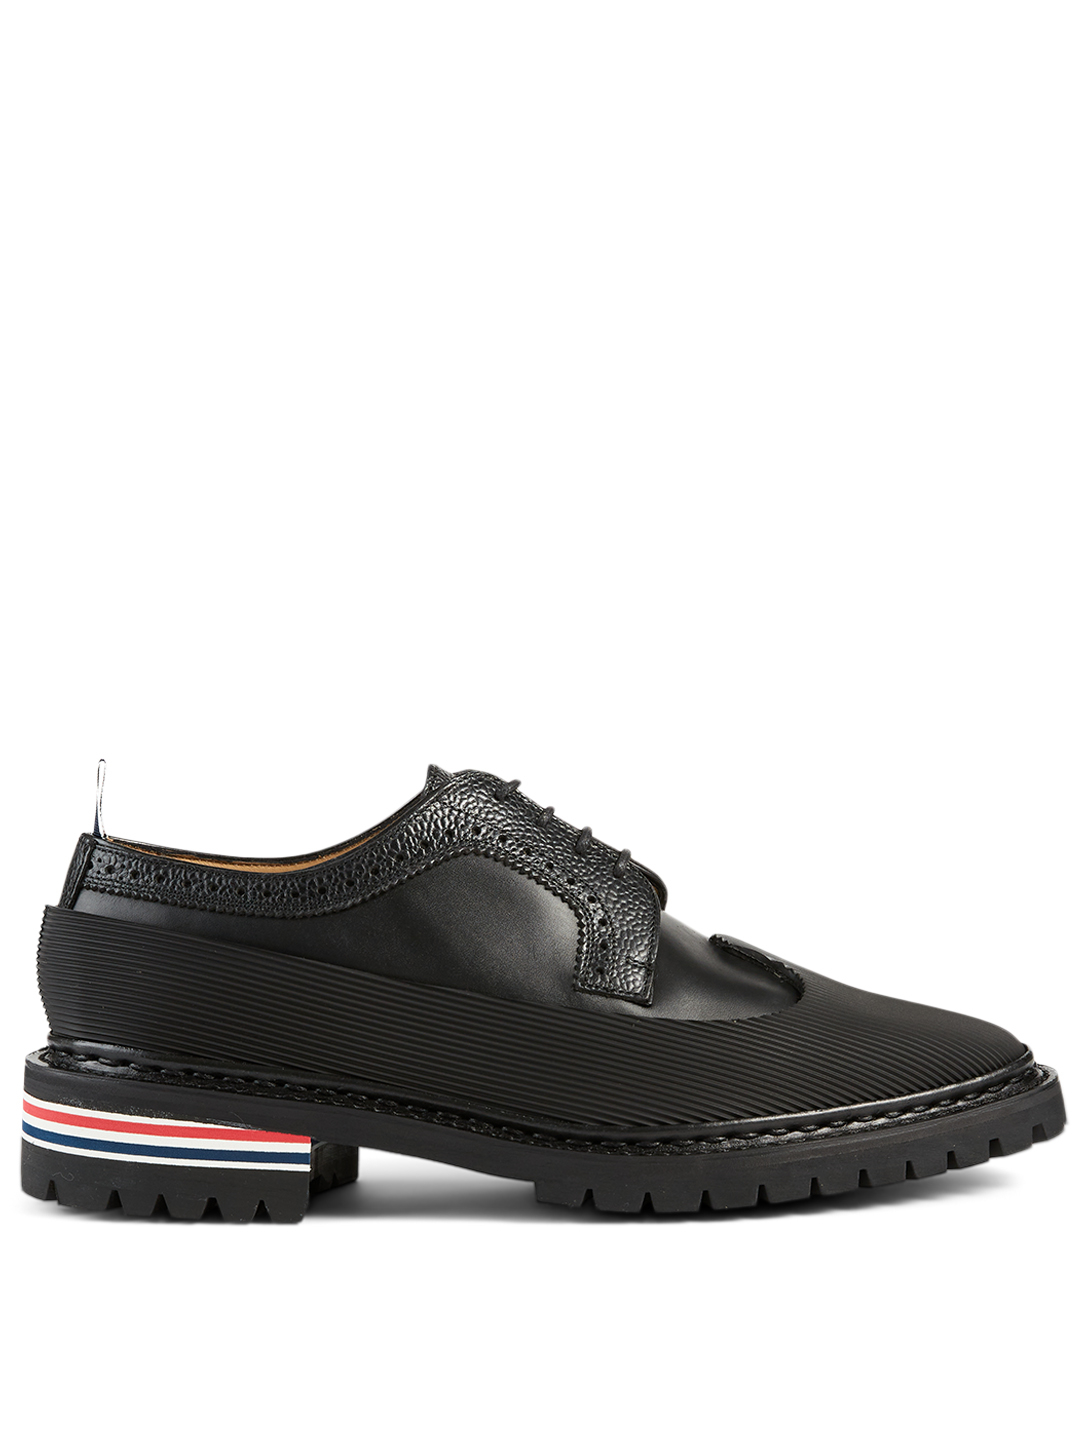 THOM BROWNE Leather Longwing Brogue Lace-Up Shoes Men's Black